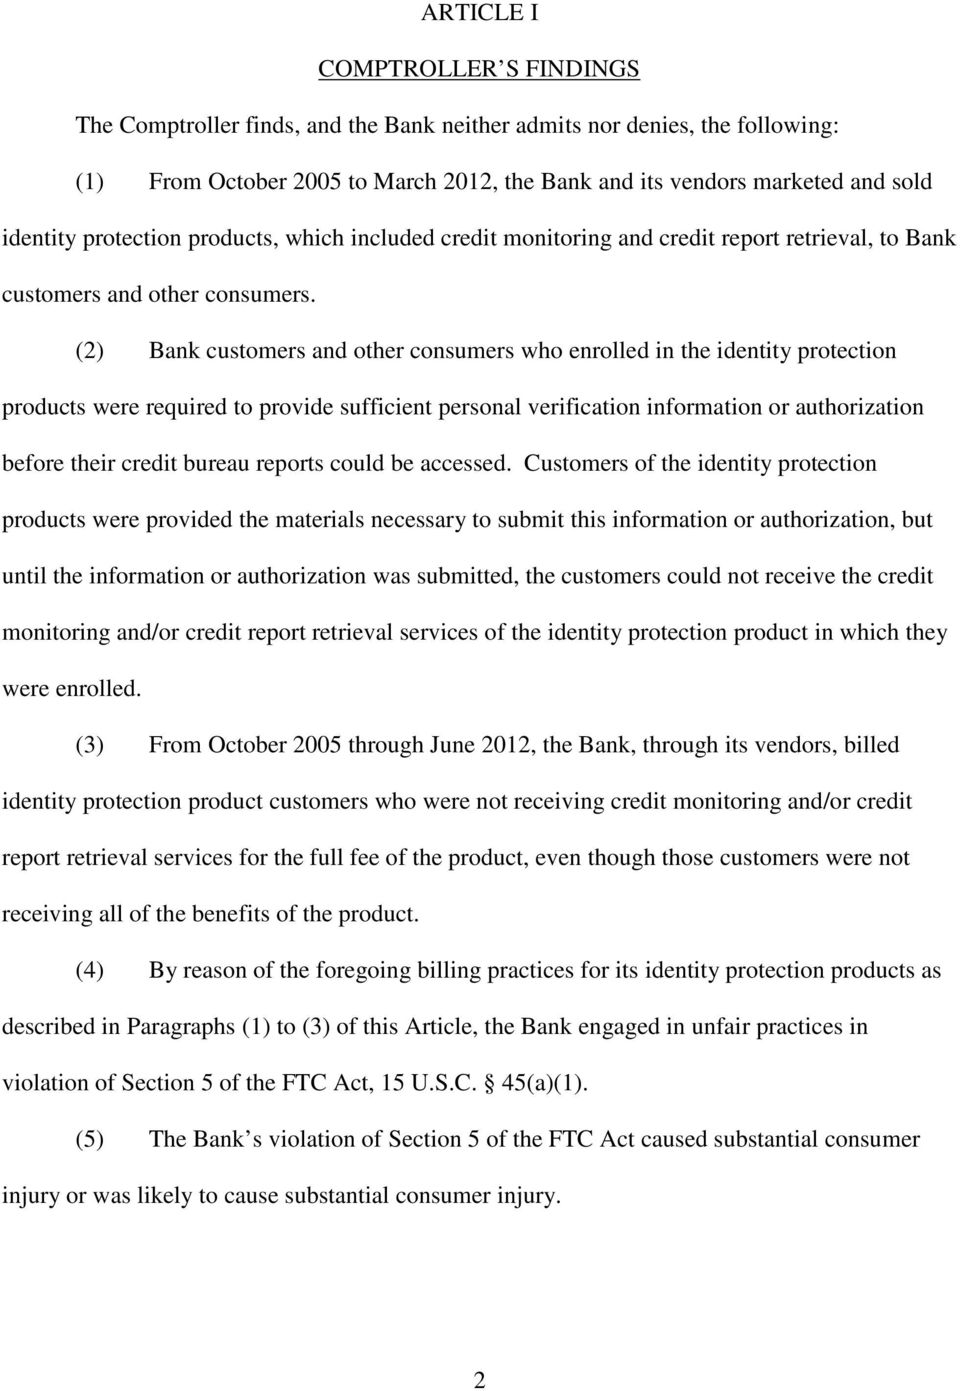 (2 Bank customers and other consumers who enrolled in the identity protection products were required to provide sufficient personal verification information or authorization before their credit